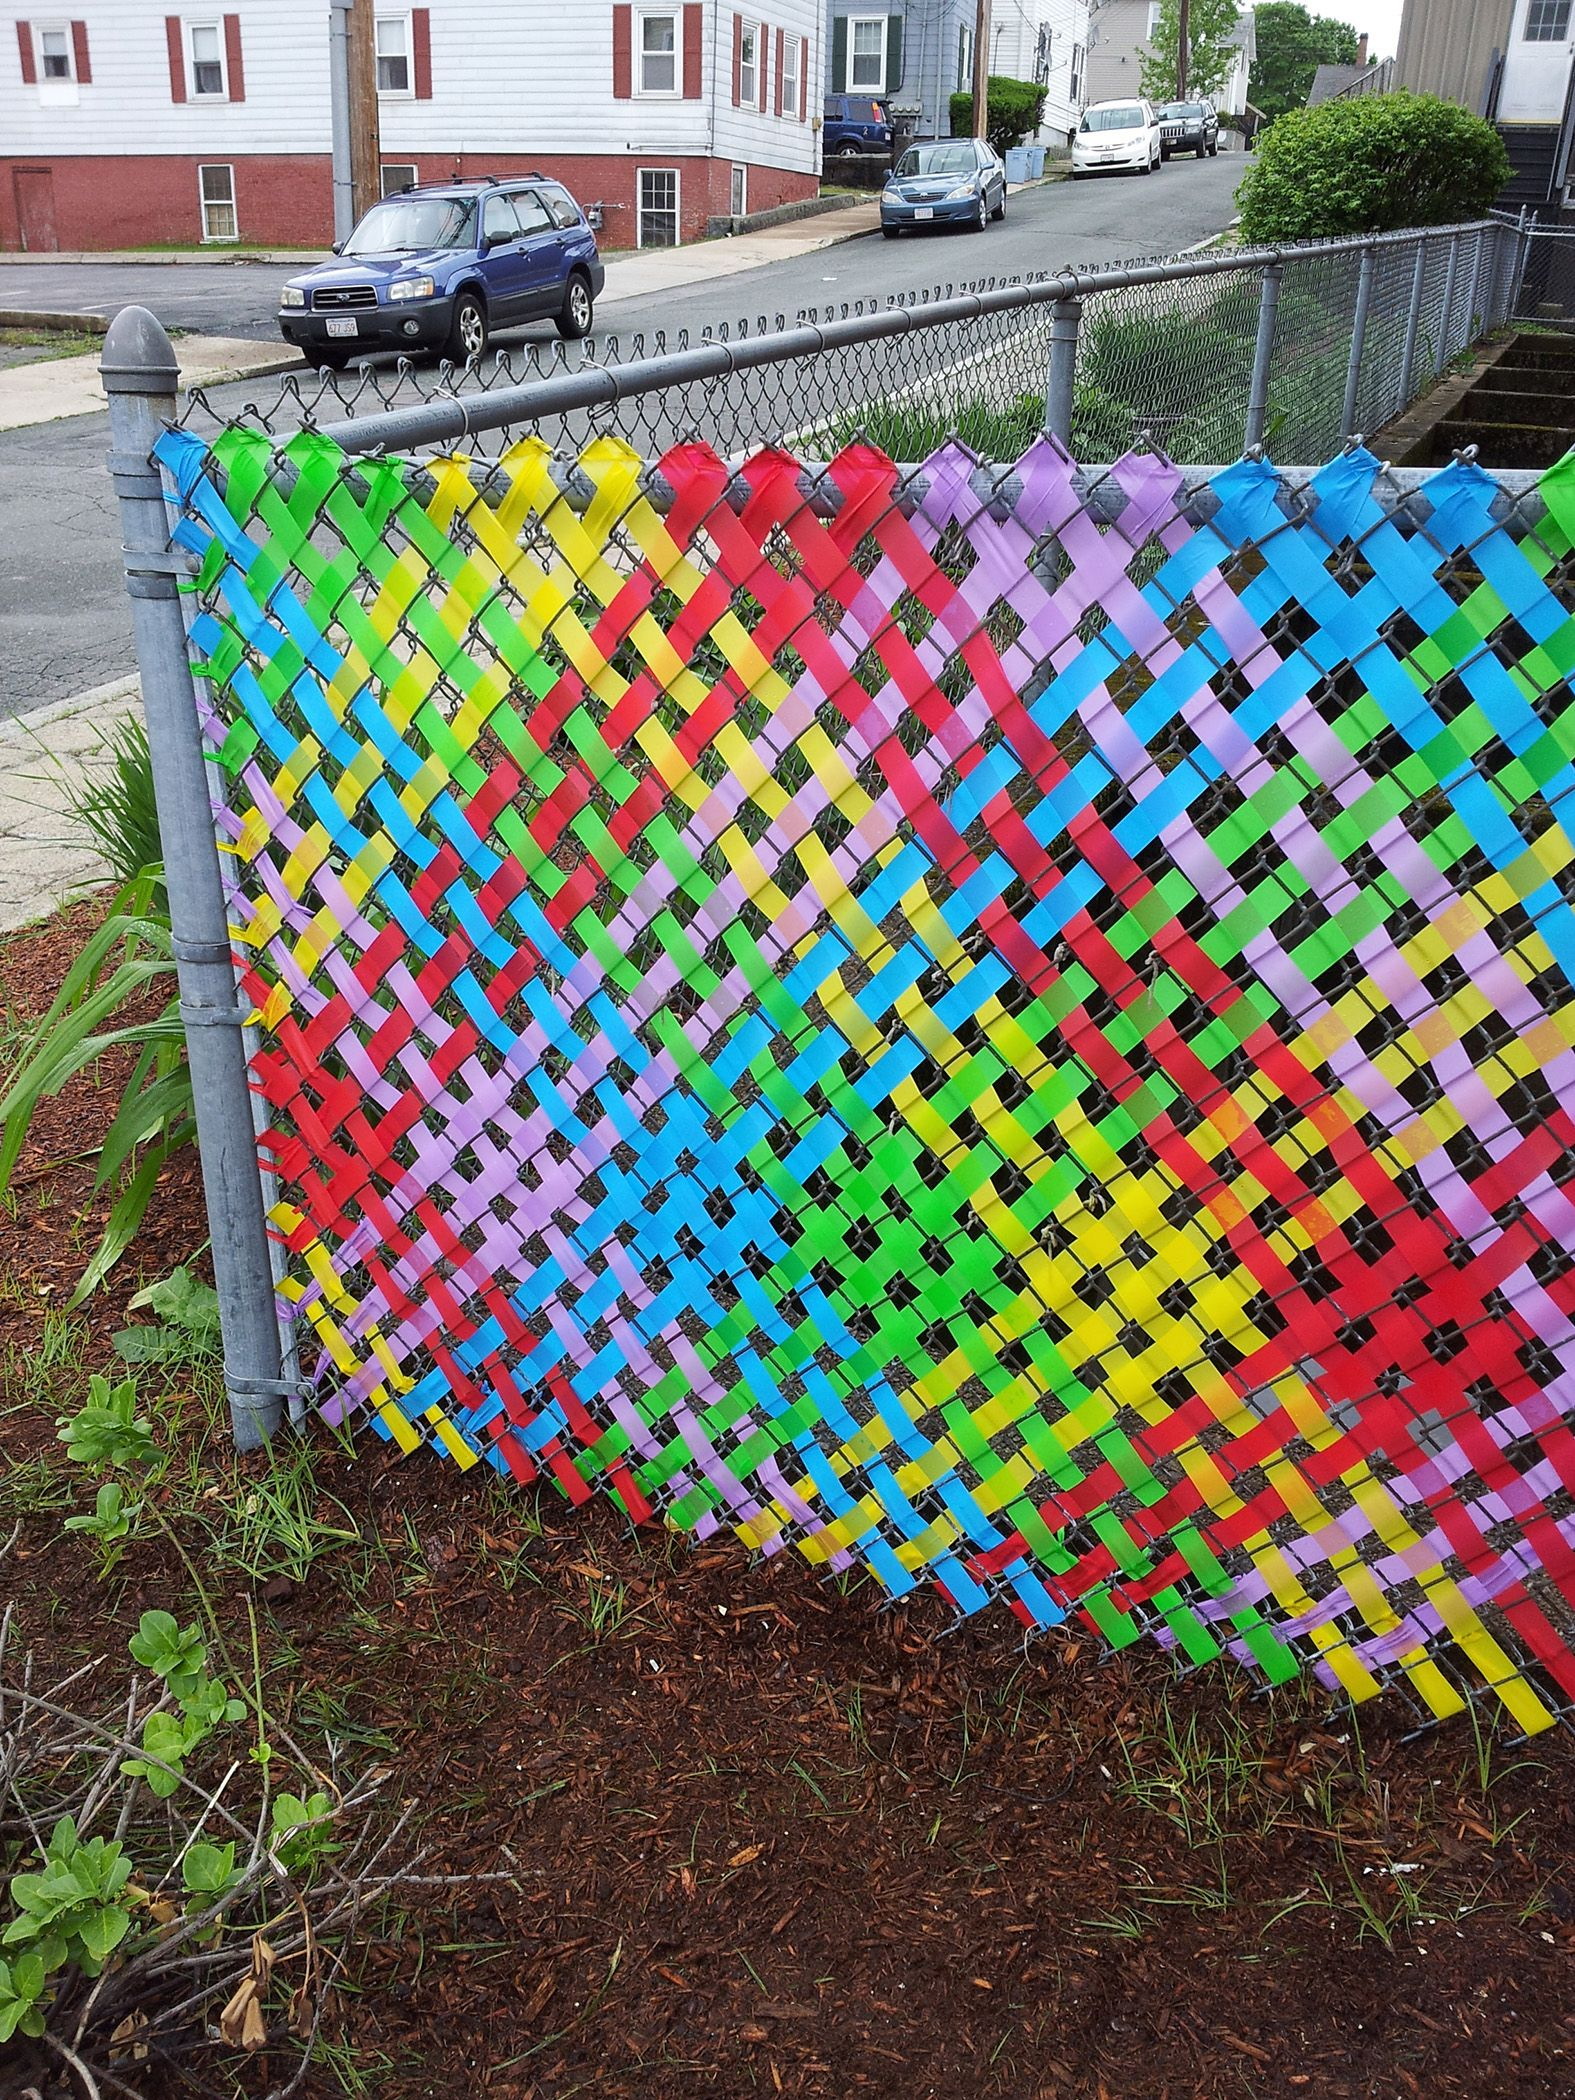 Picture Of Fence With Rainbow Weaving Favorite Places Spaces